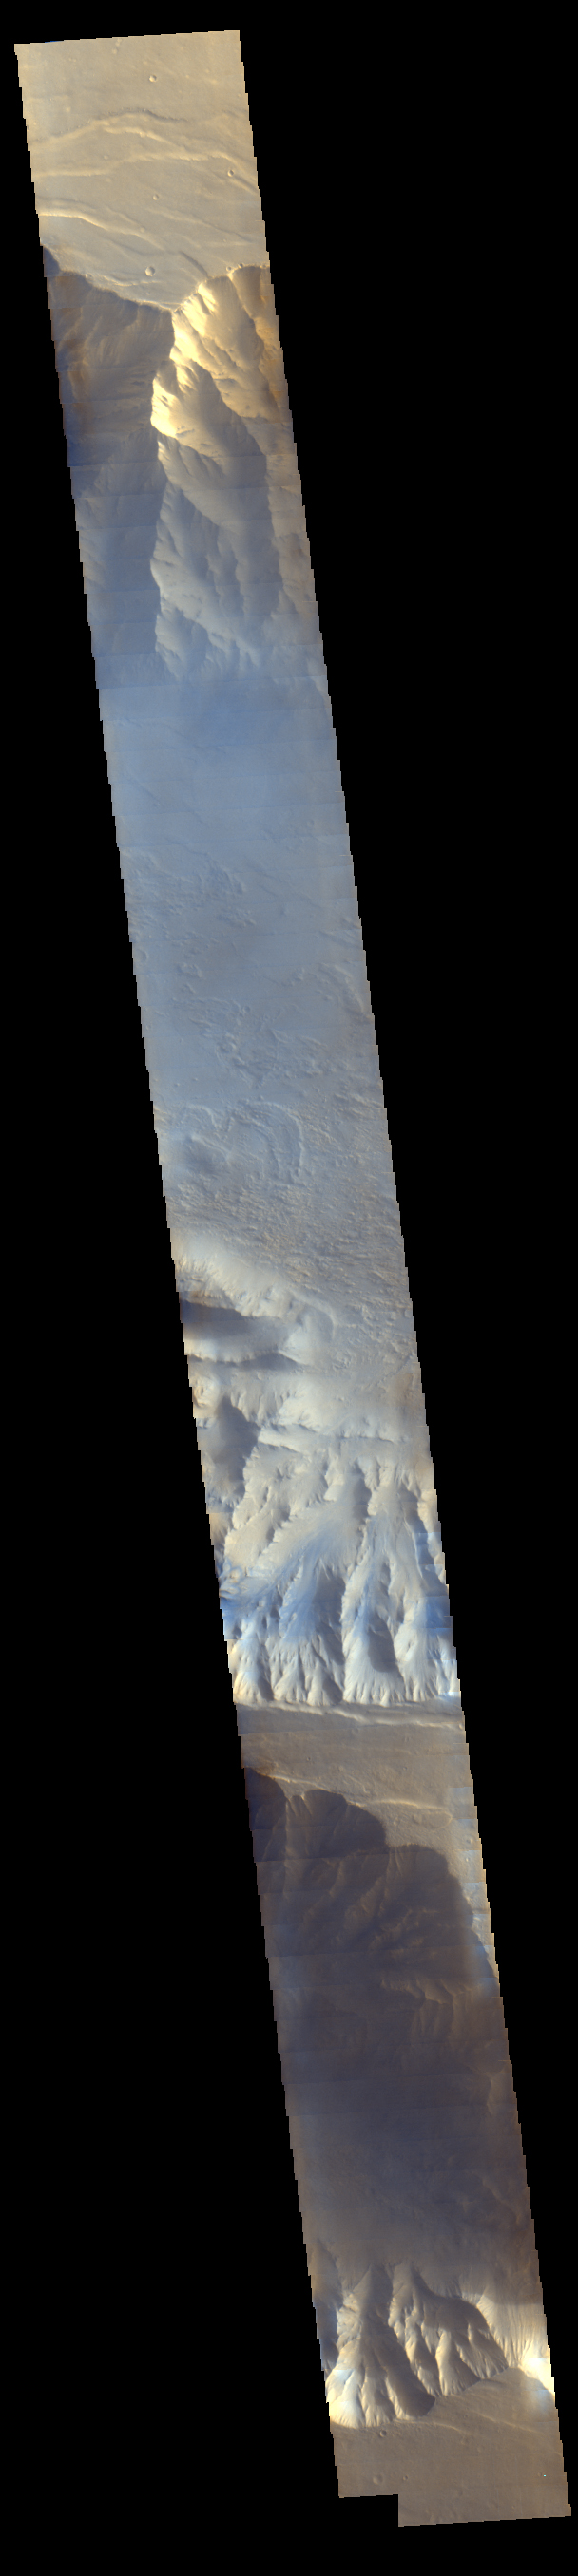 Morning clouds fill Coprates Chasma on Mars in this Nov. 25, 2015, image from the THEMIS camera on NASA's Mars Odyssey. No orbiter systematically observed Mars in morning sunlight before 2015. The clouds appear blue because ice particles in them scatter blue light more strongly than other colors.